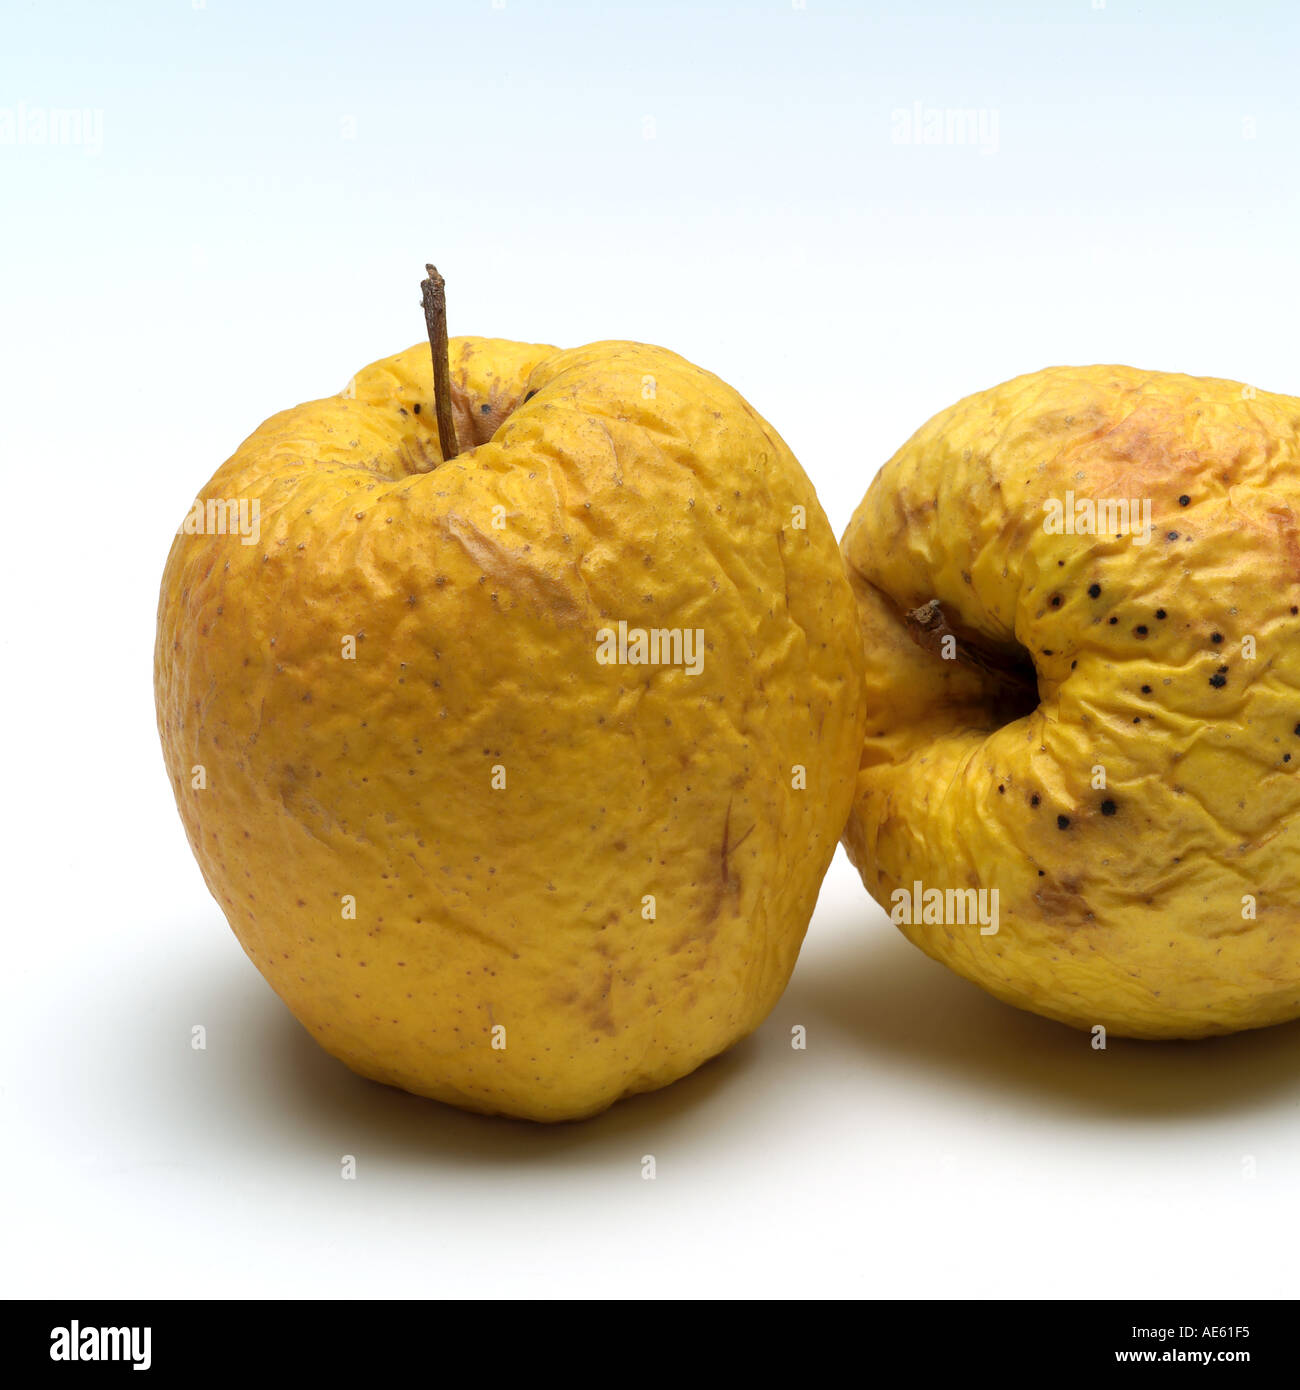 Two wrinkled Golden Delicious apples - Stock Image